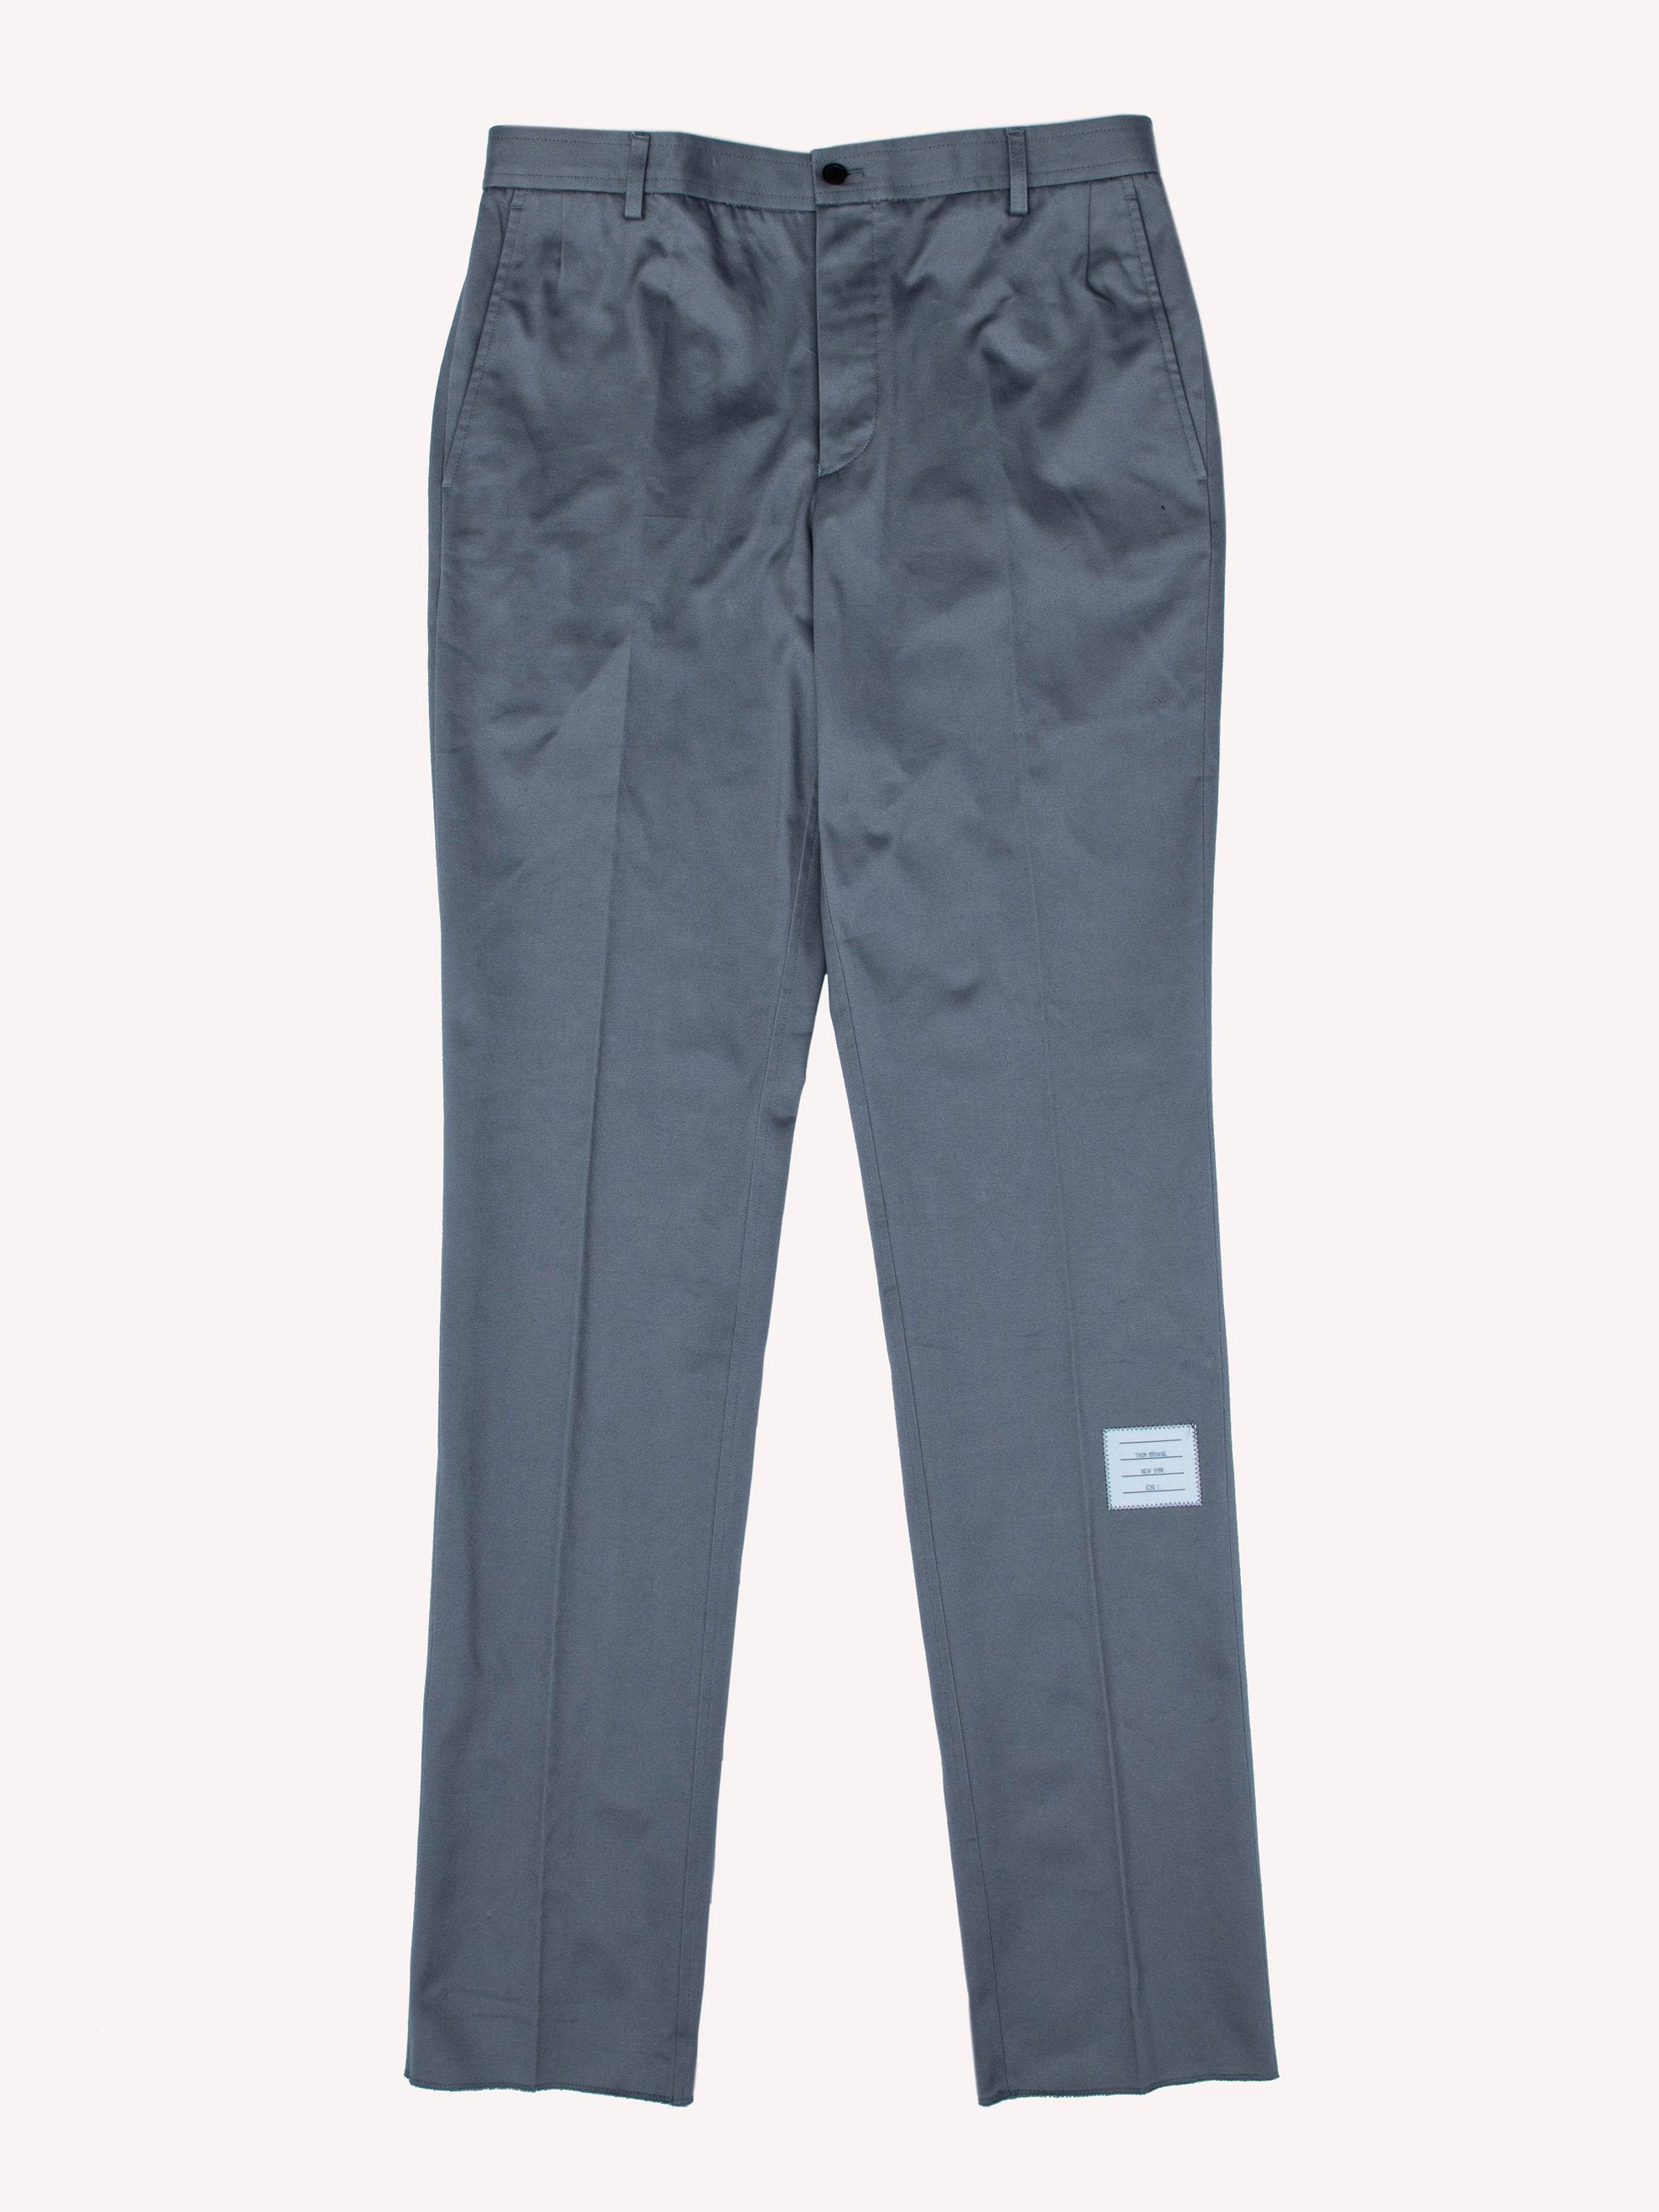 Cotton Twill Unconstructed Chino Trouser